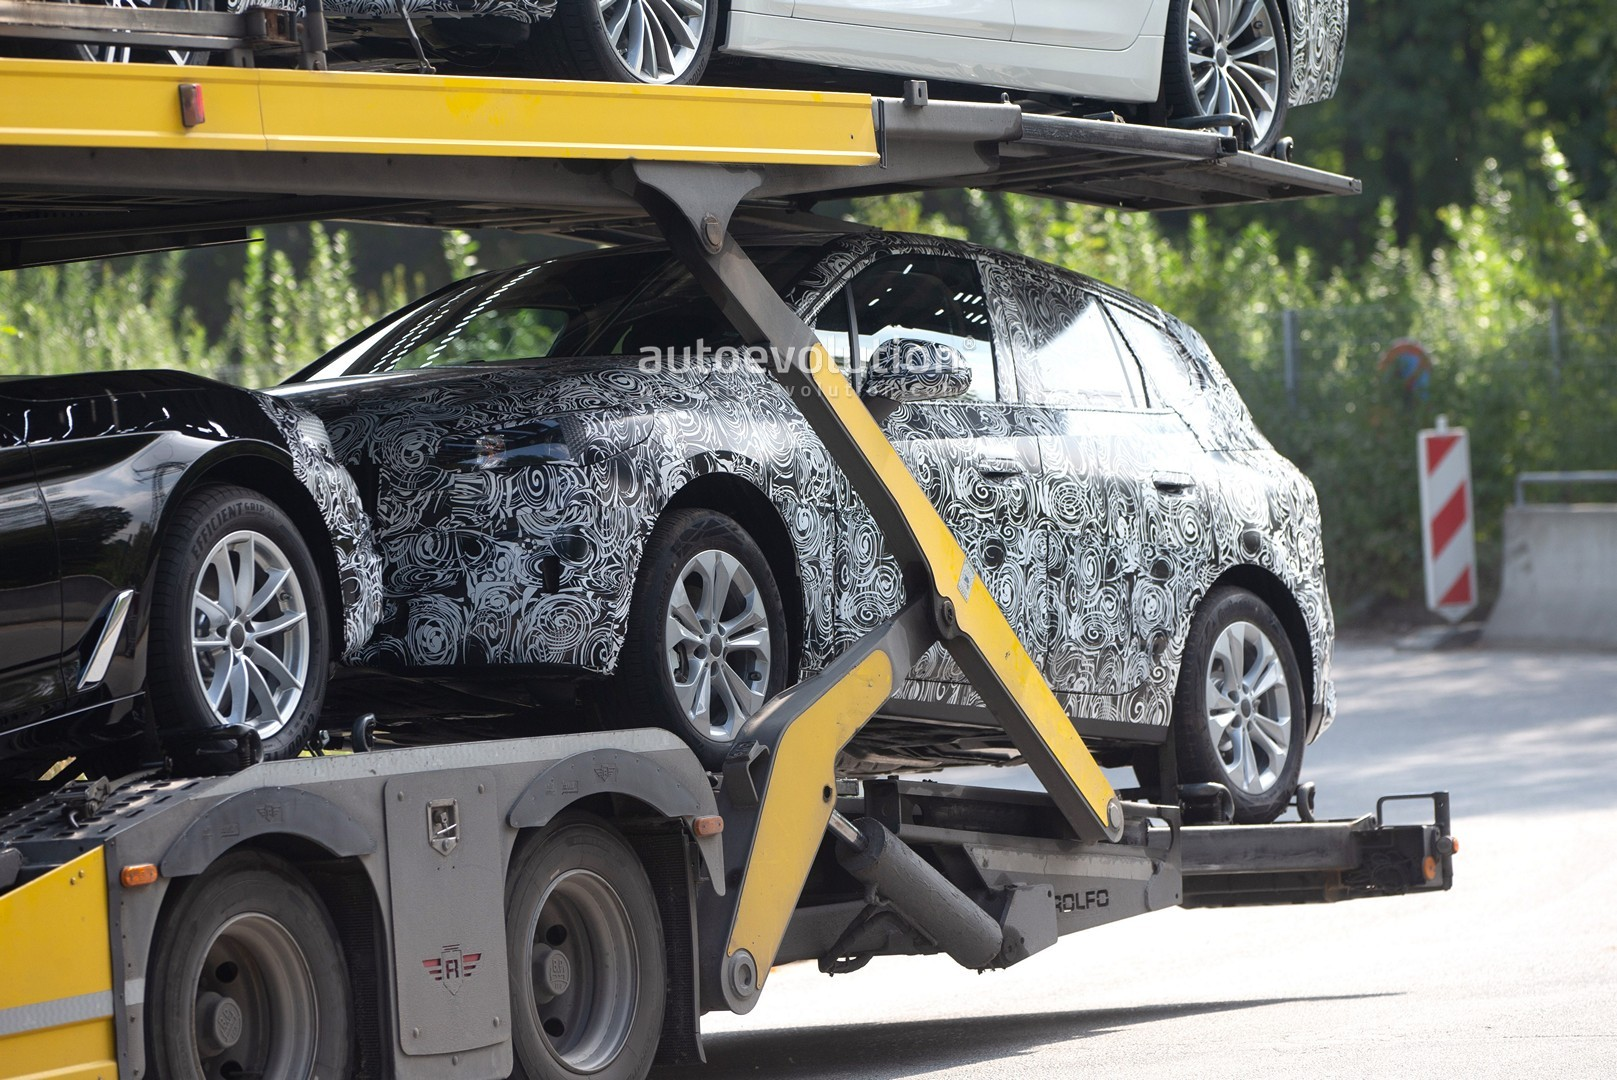 2021 - [BMW] Série 2 Active Tourer II New-bmw-2-series-active-tourer-spied-why-won-t-this-car-die_2